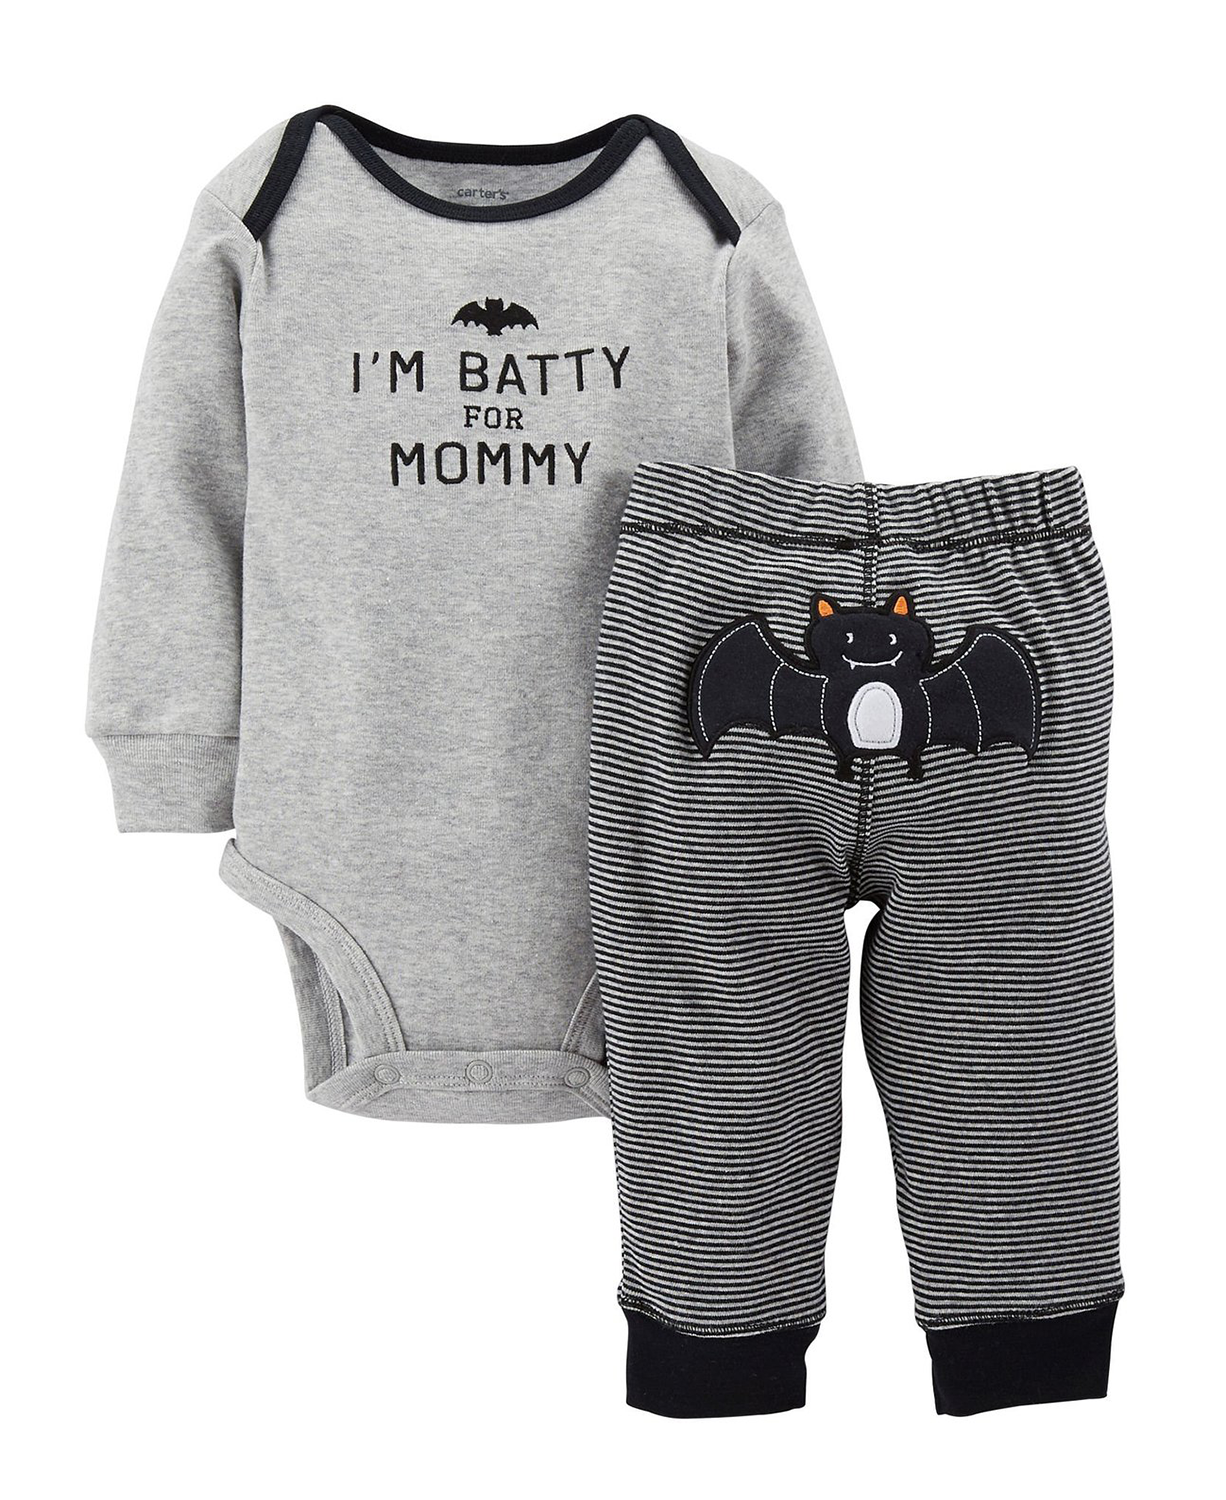 bb62c86bf Cute Carter s Baby Boys  2 Piece Halloween Set (Baby) - Black - Baby ...